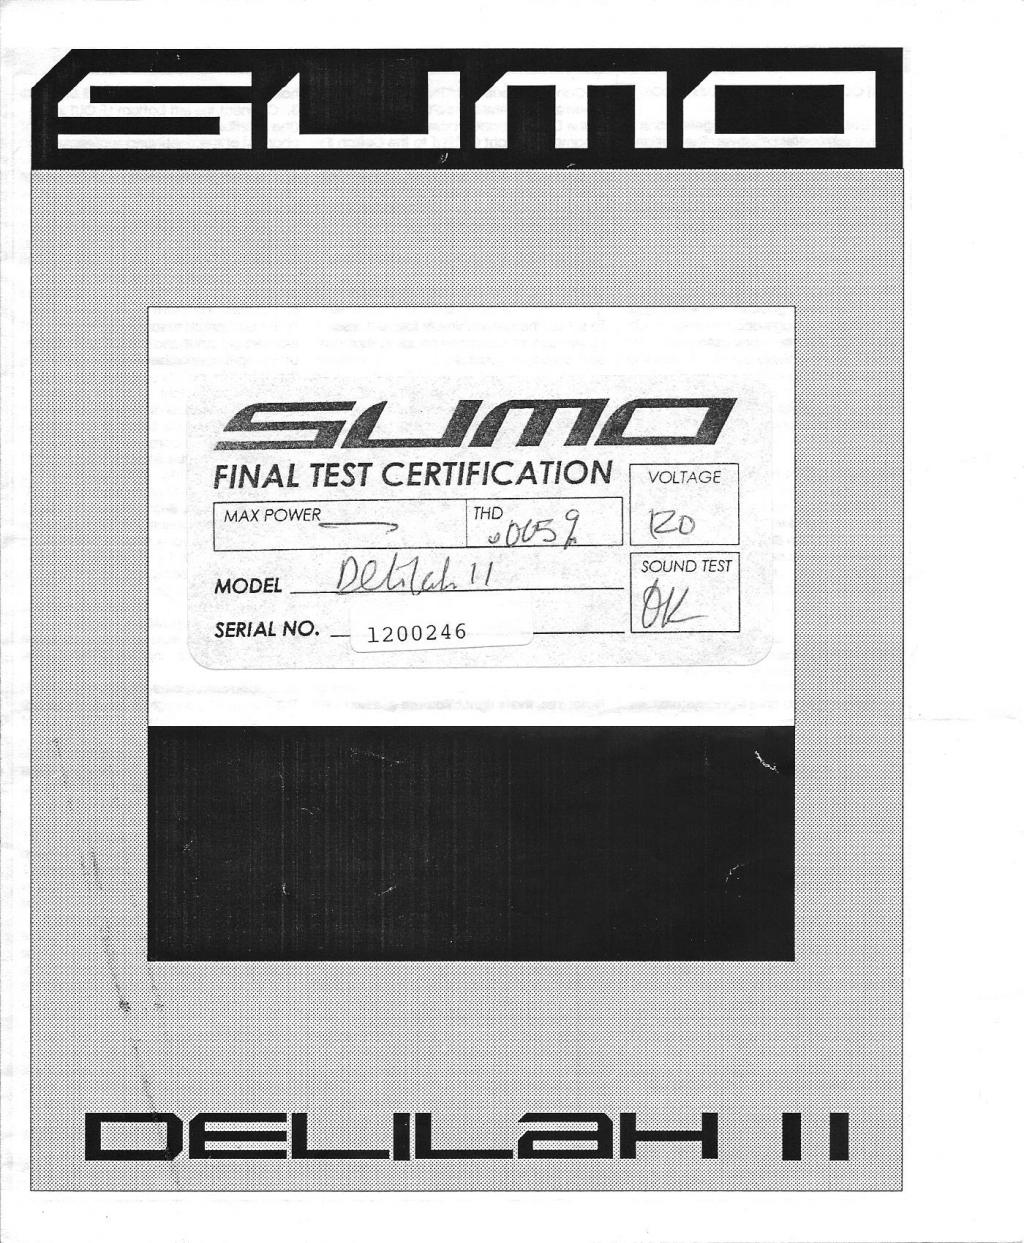 Anyone have copy of a Sumo Delilah Manual?